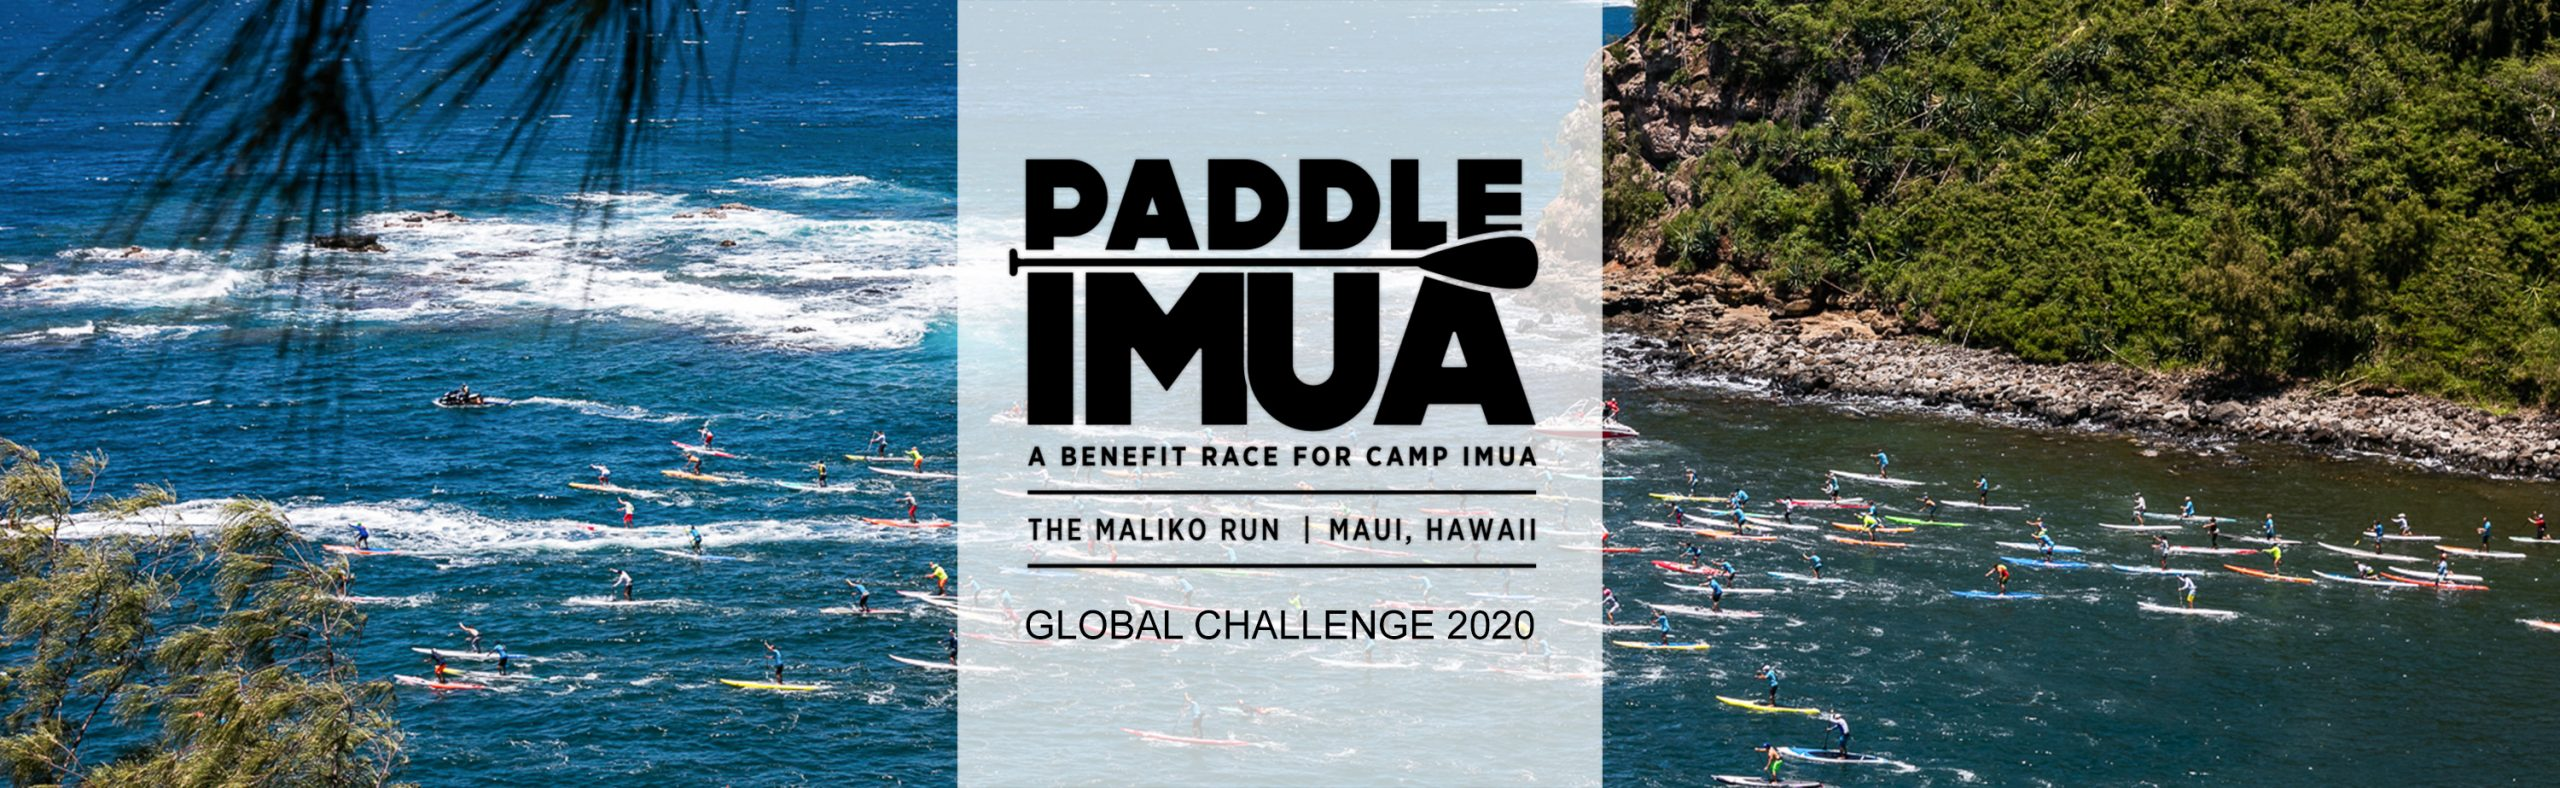 july2020-paddle-imua